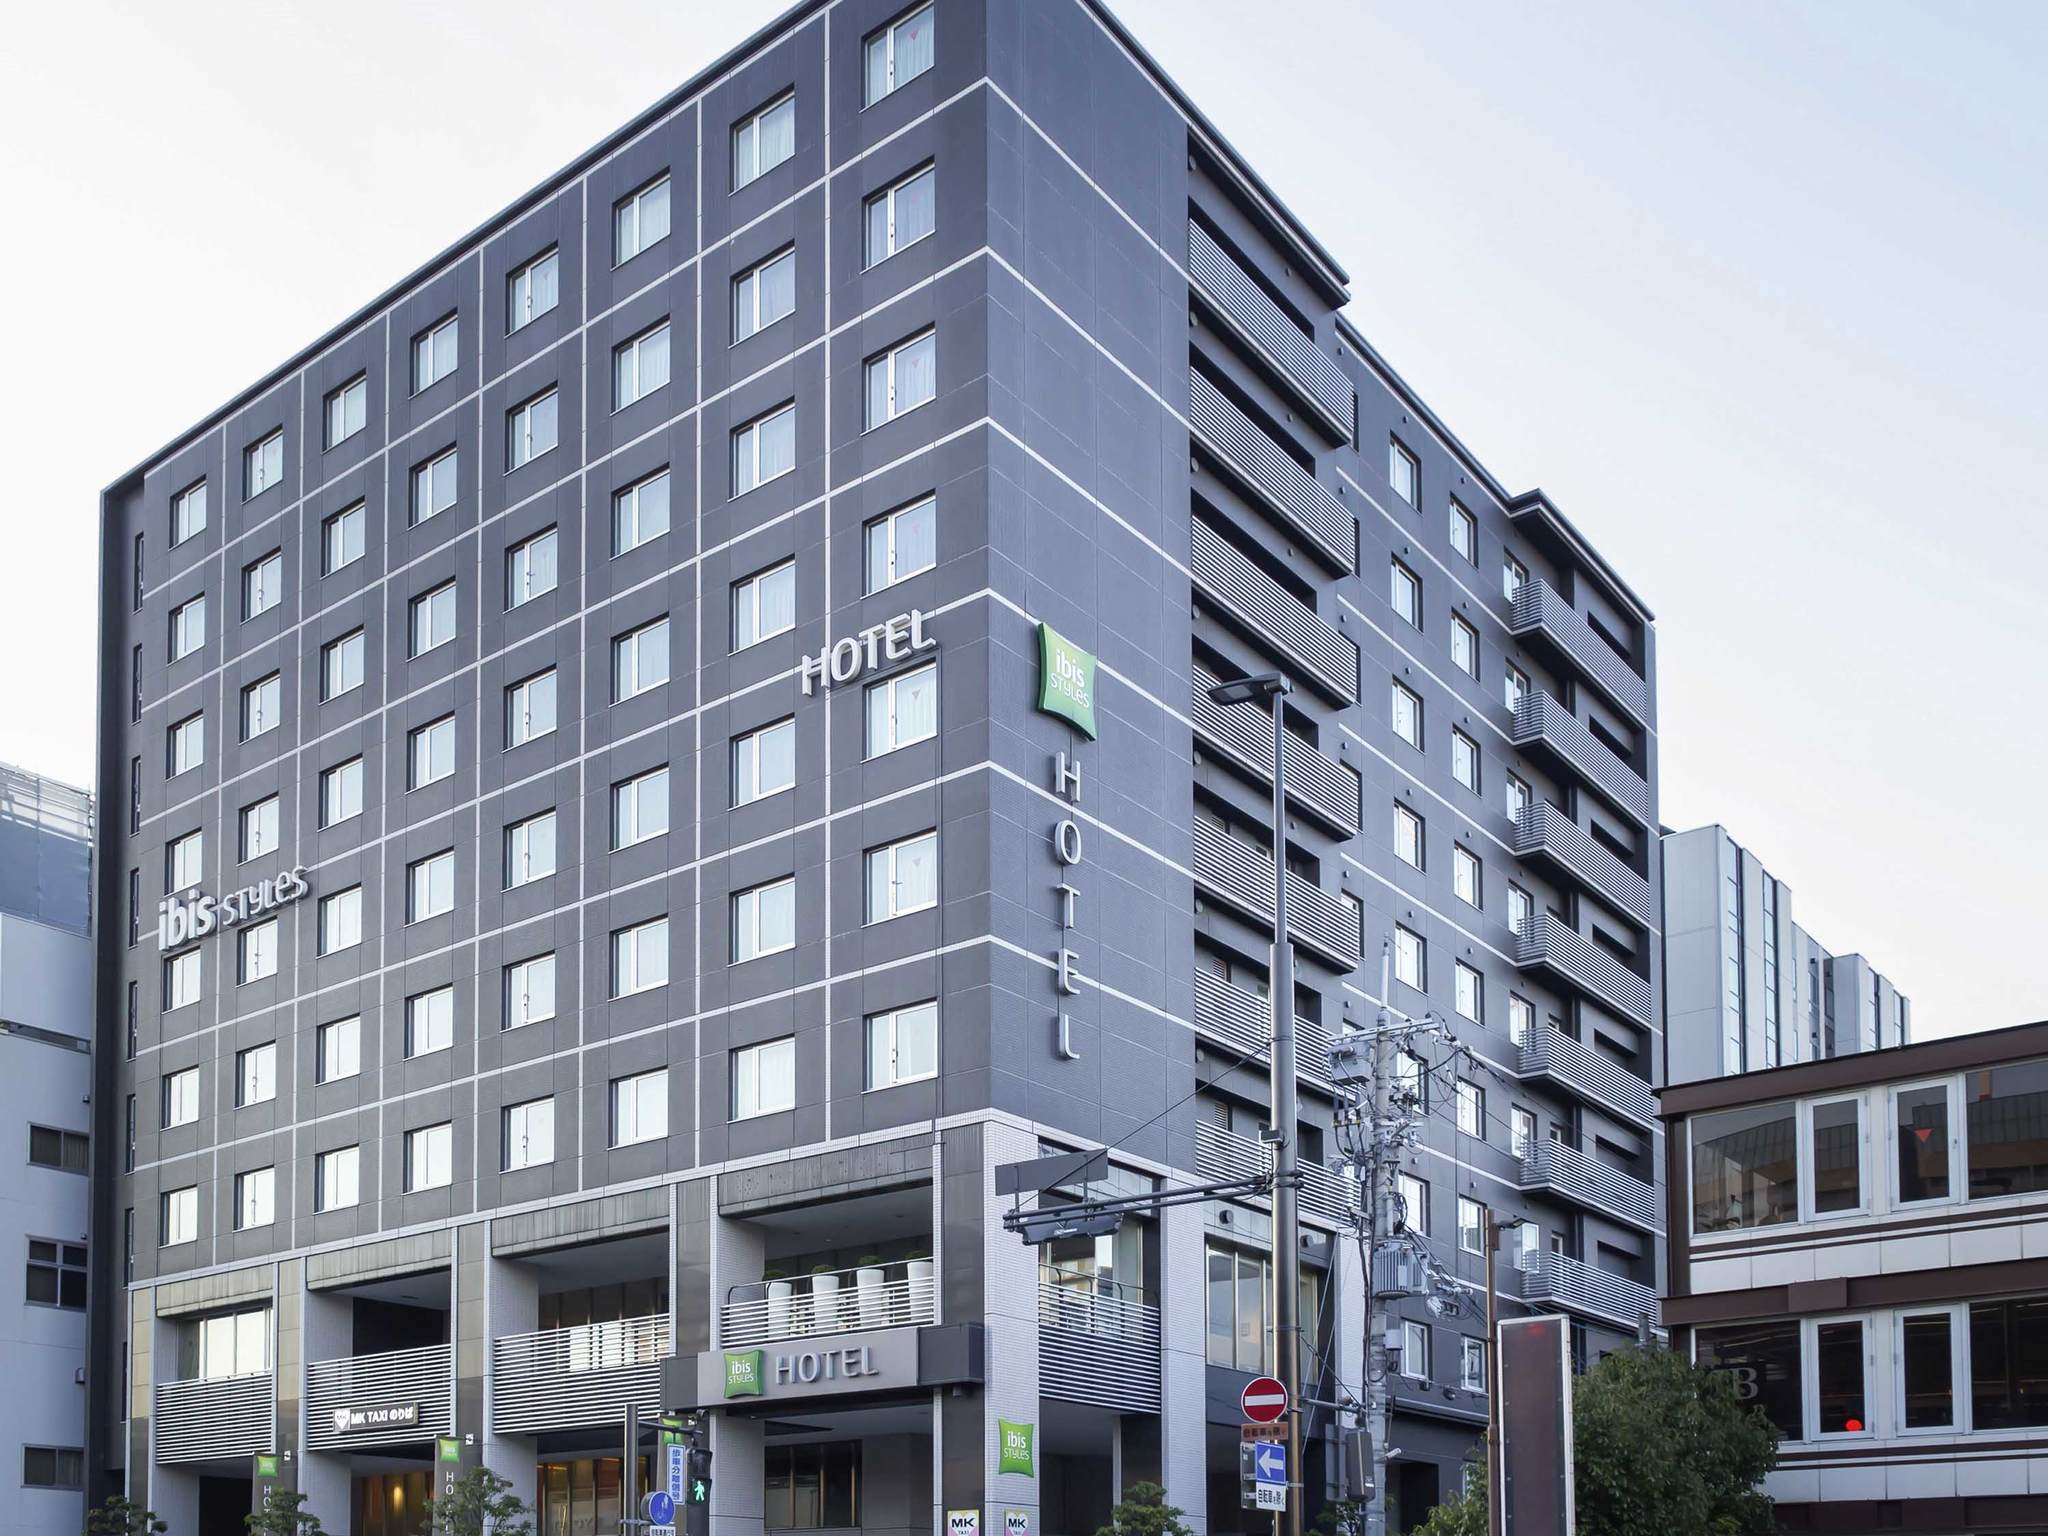 Hotell – ibis Styles Kyoto Station